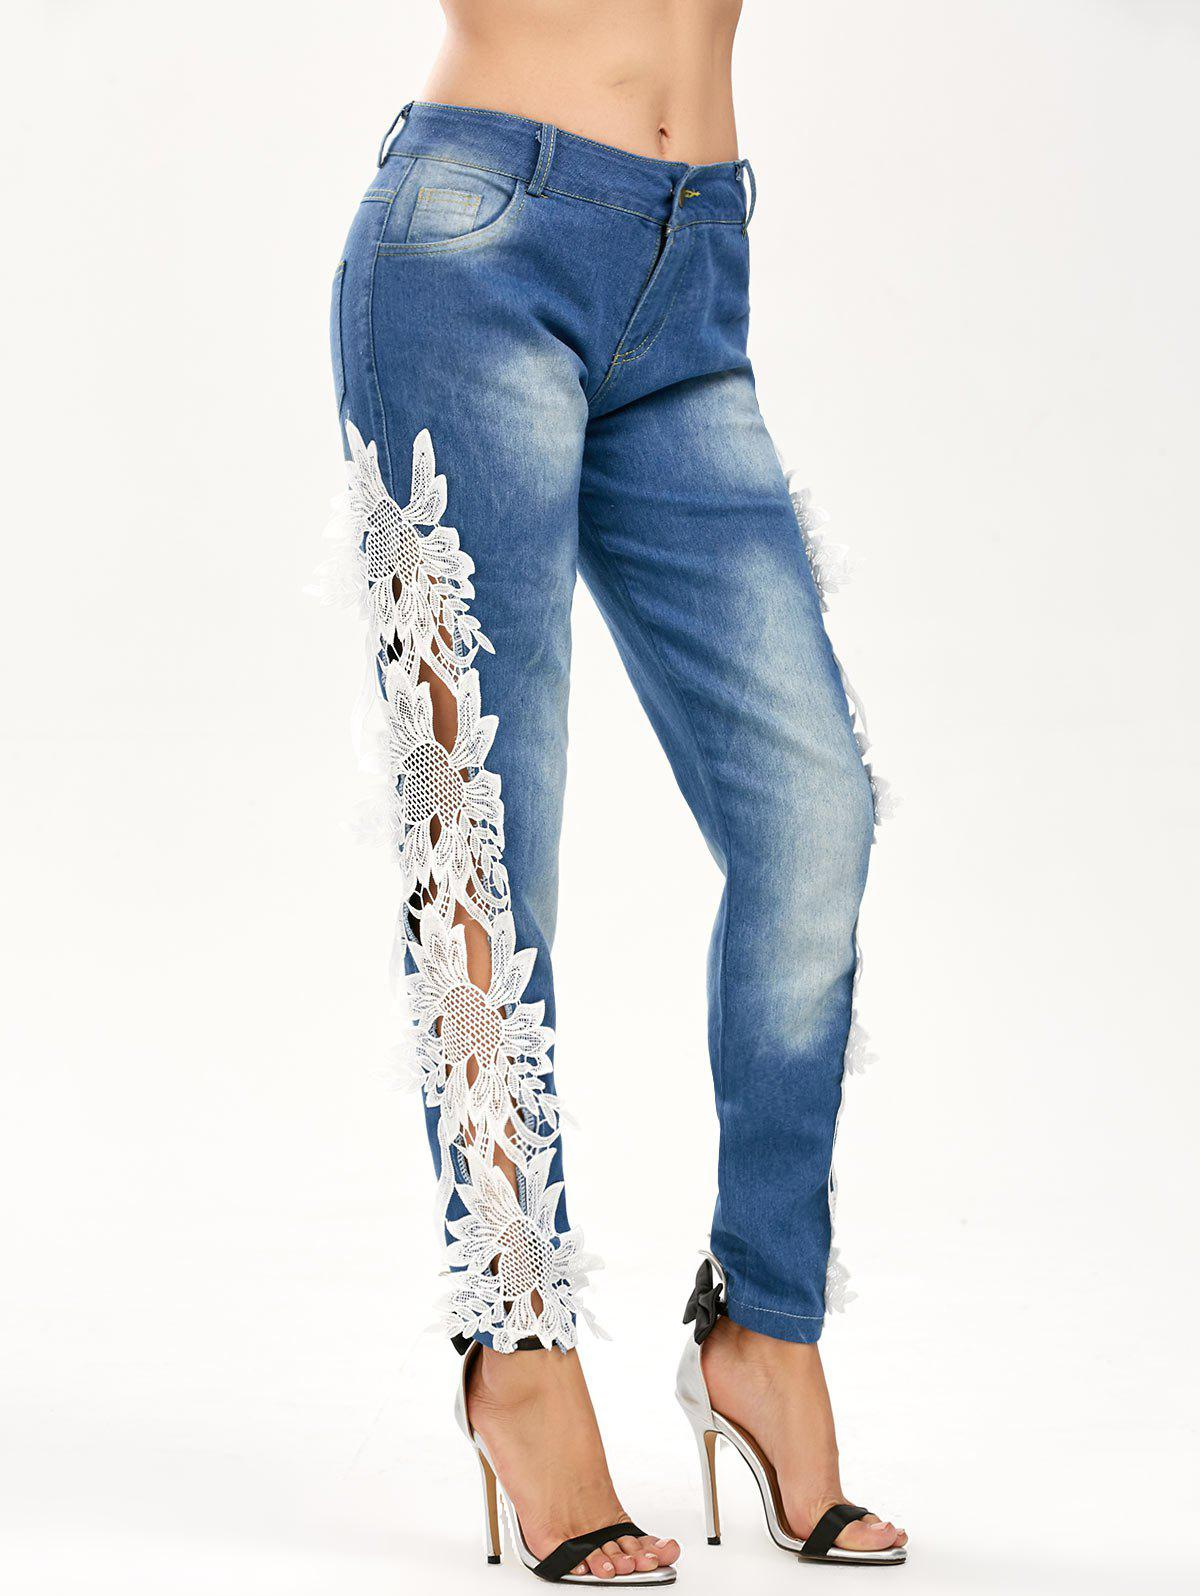 Hollow Out Lace Panel Jeans - BLUE/WHITE XL